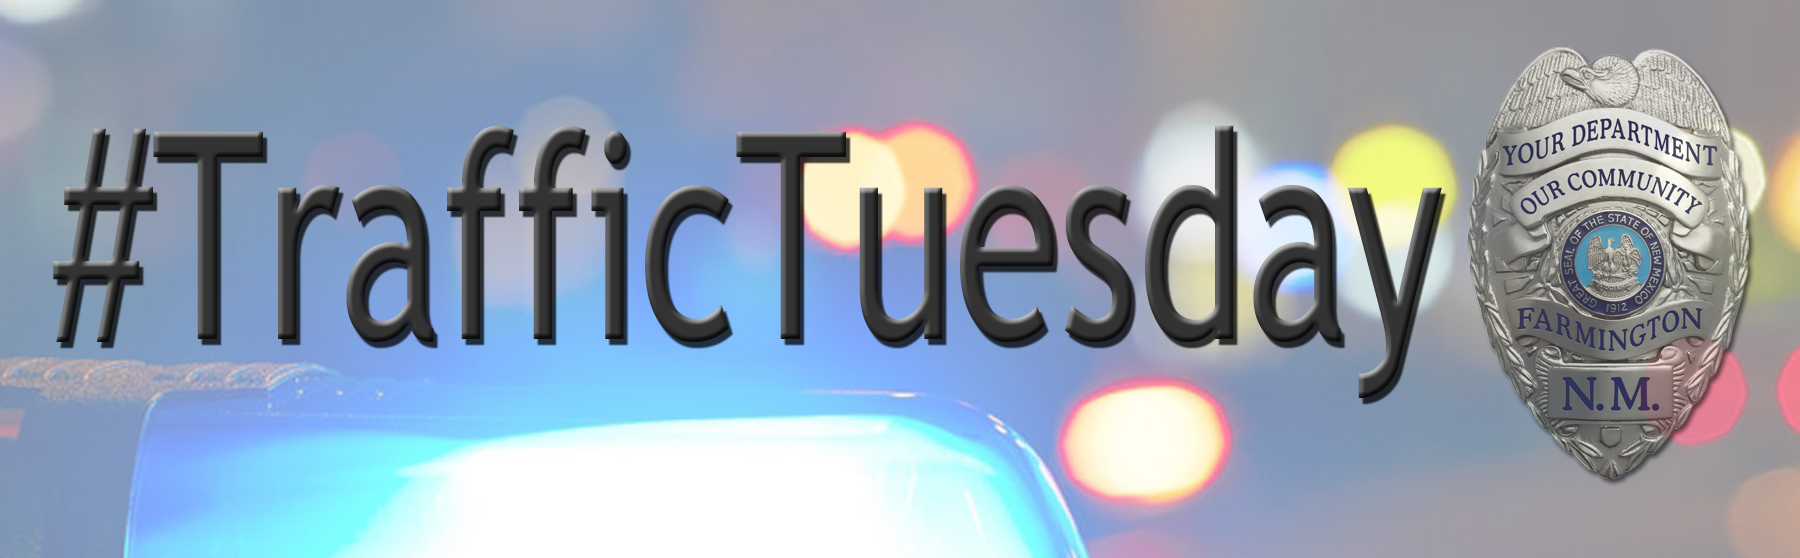 Traffic Tuesday 1